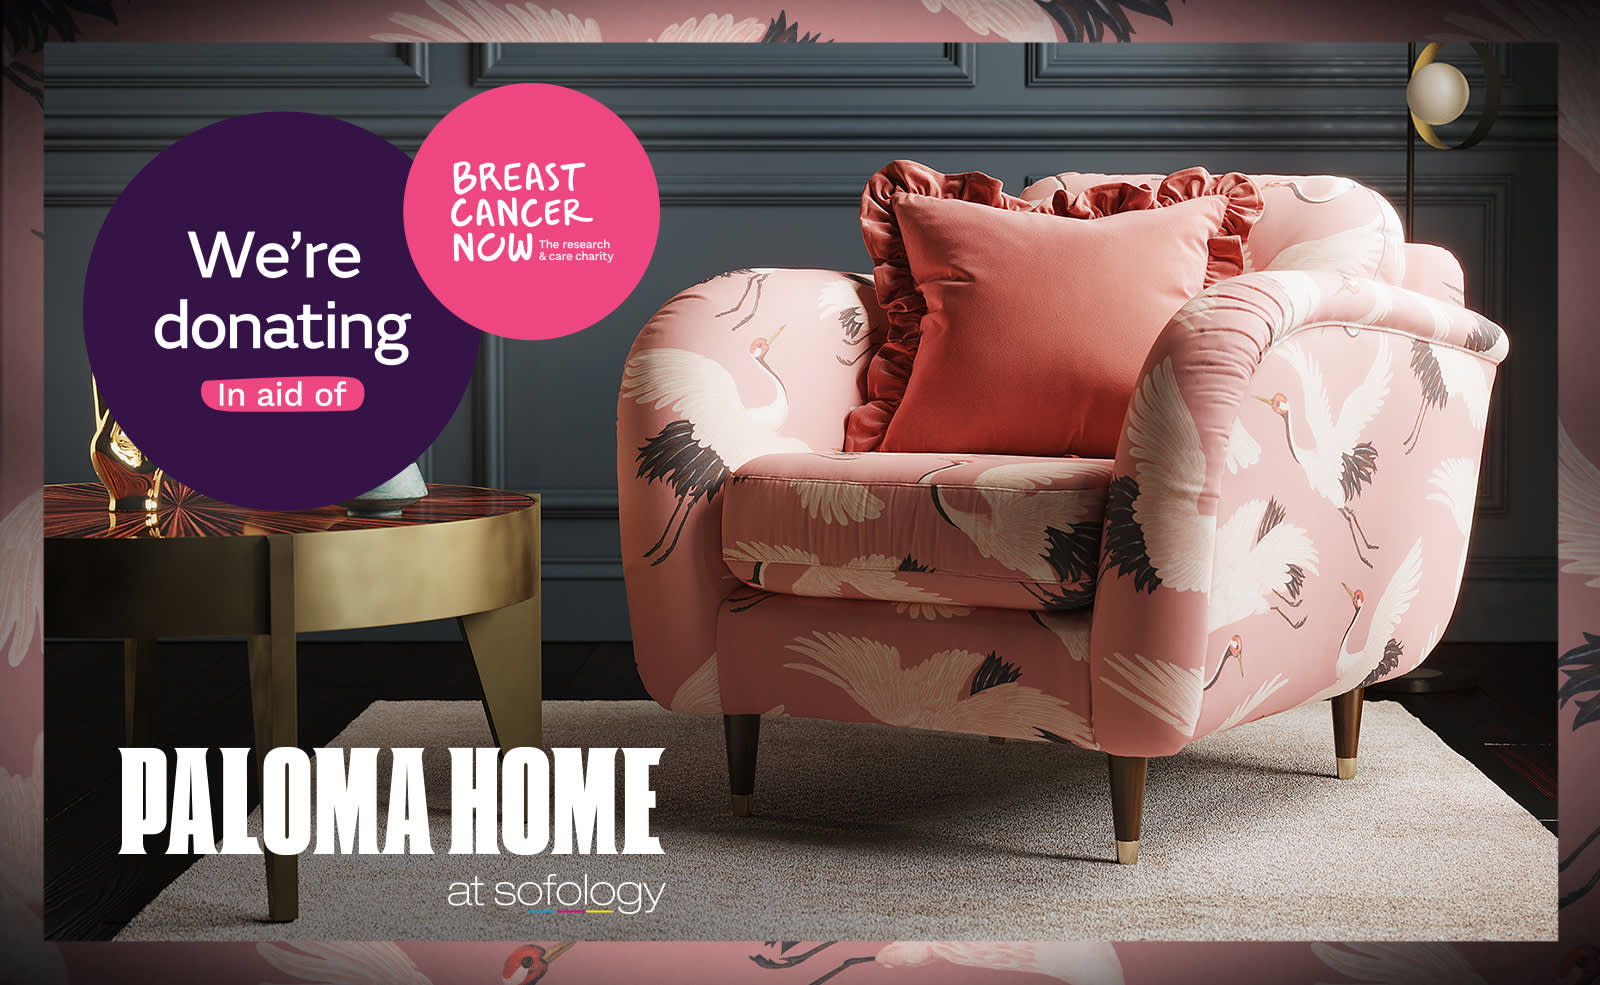 Paloma Home for Breast Cancer Now